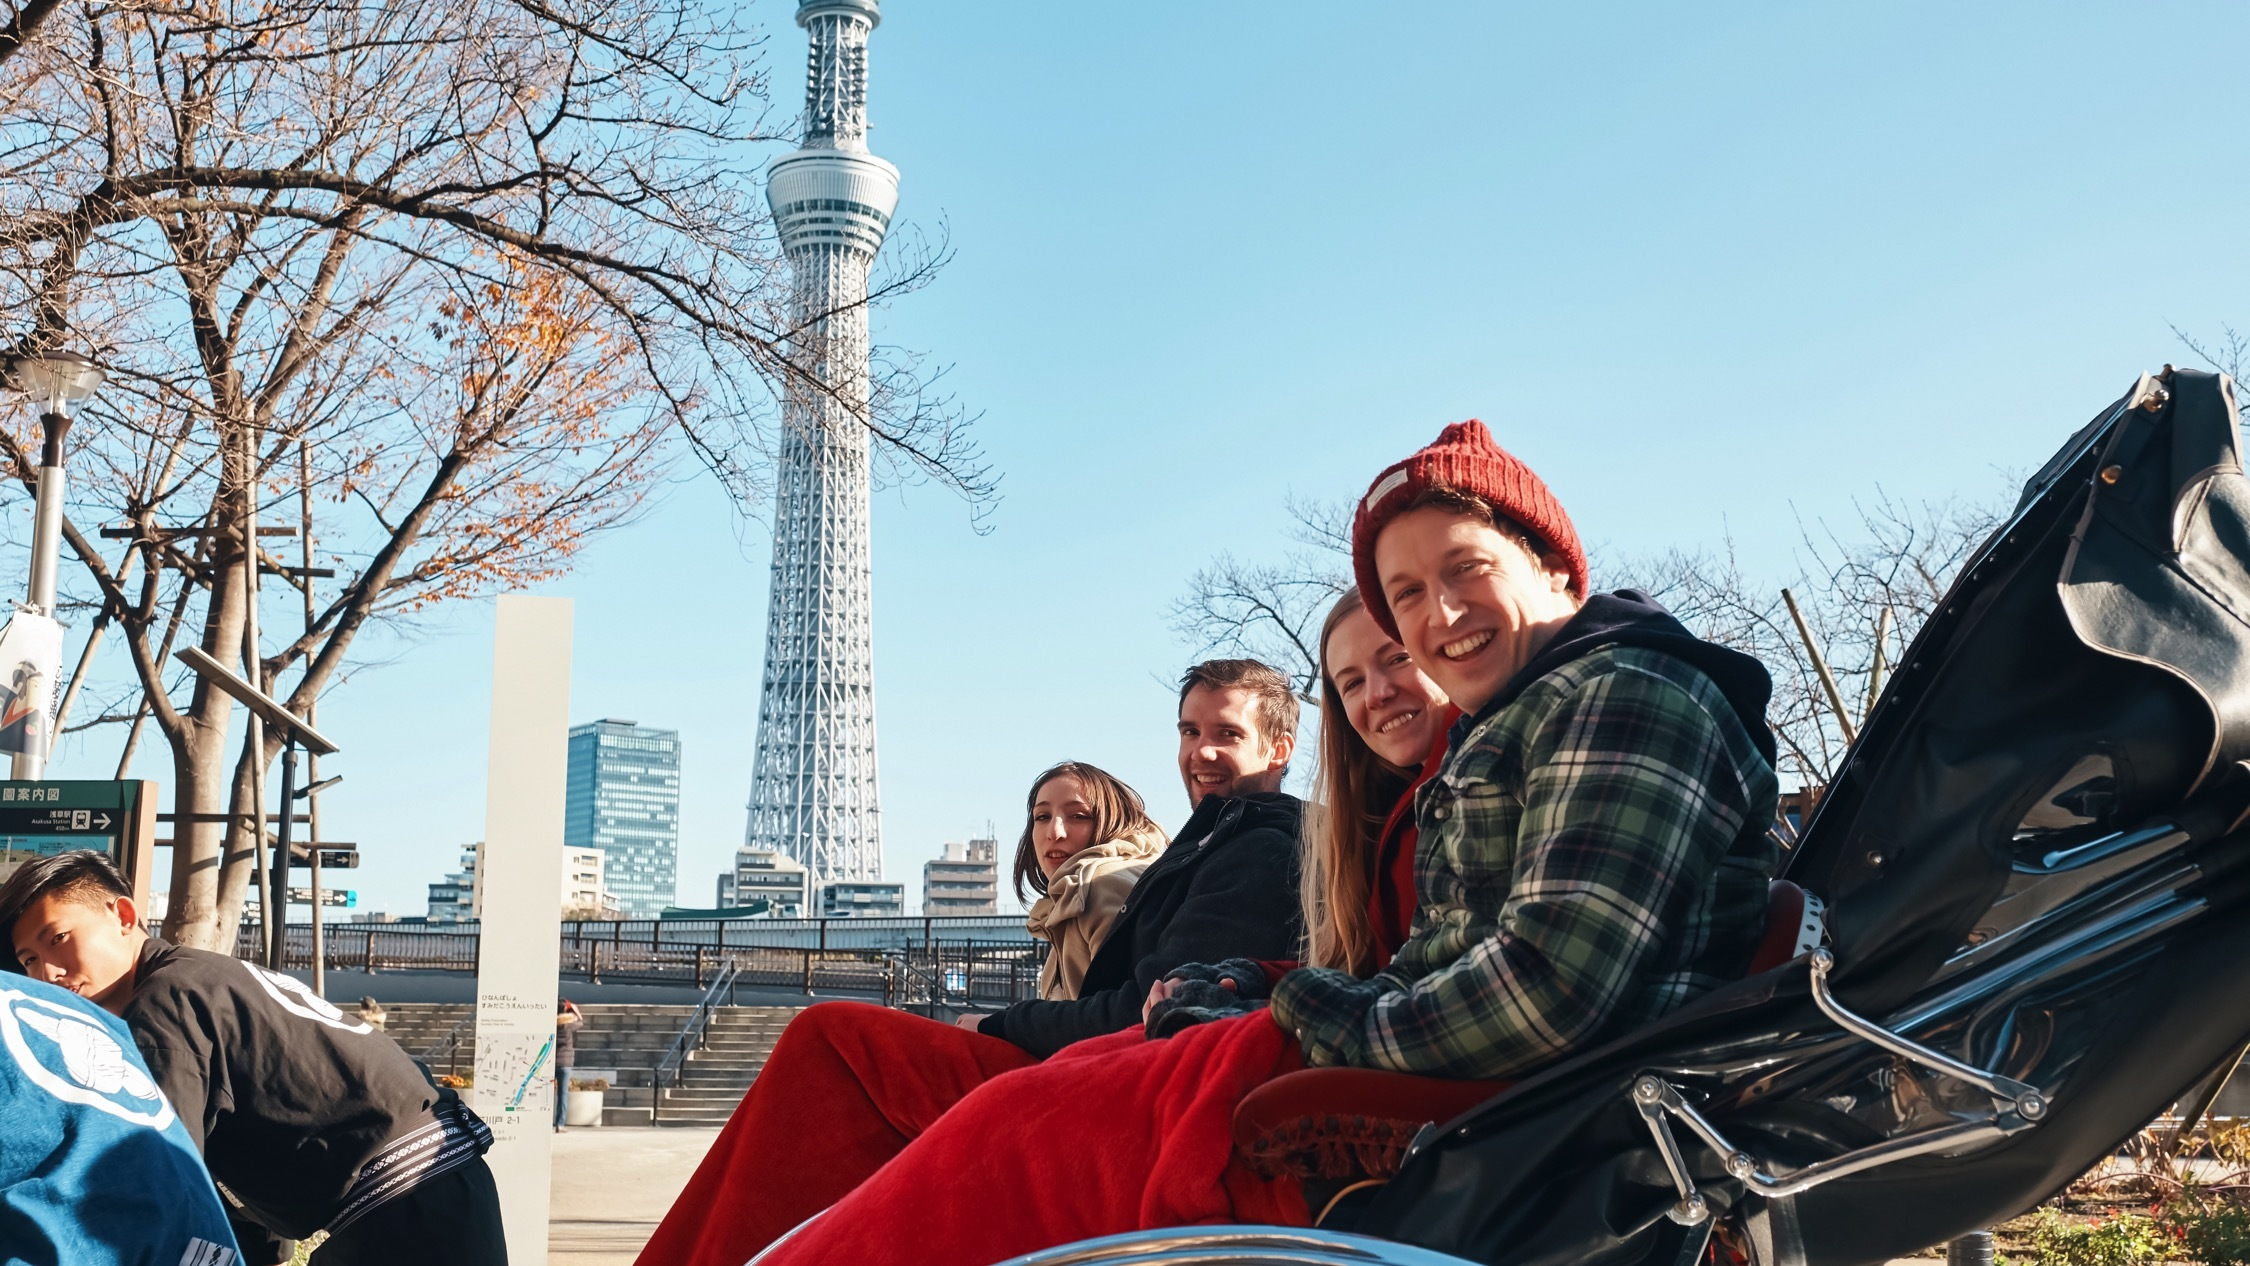 Rickshaw ride whilst viewing Skytree and Asakusa